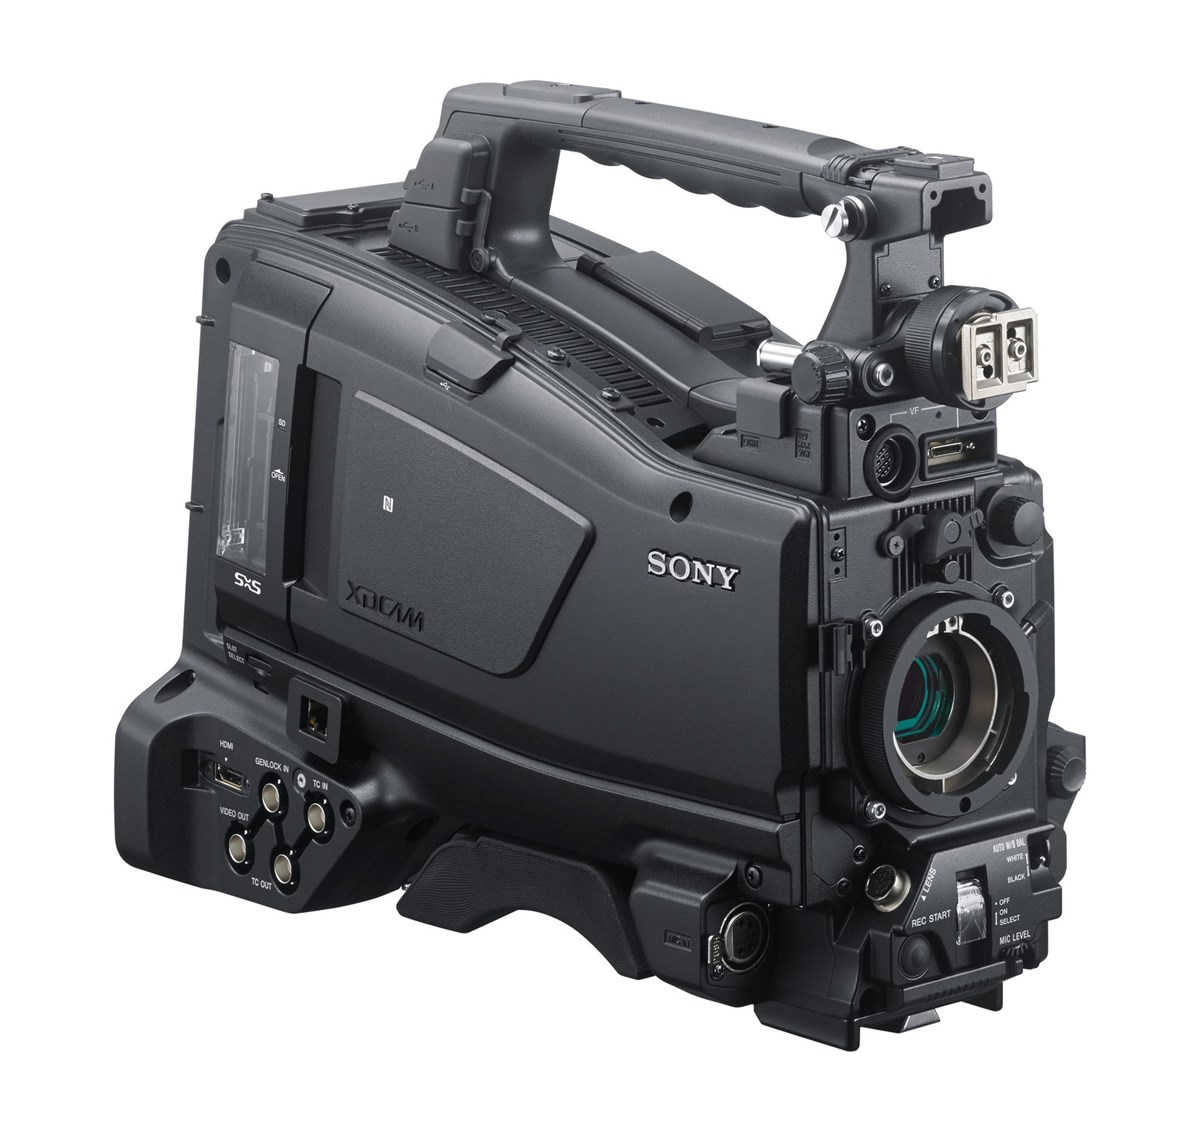 Firmware updates for the Sony PXW camcorder range